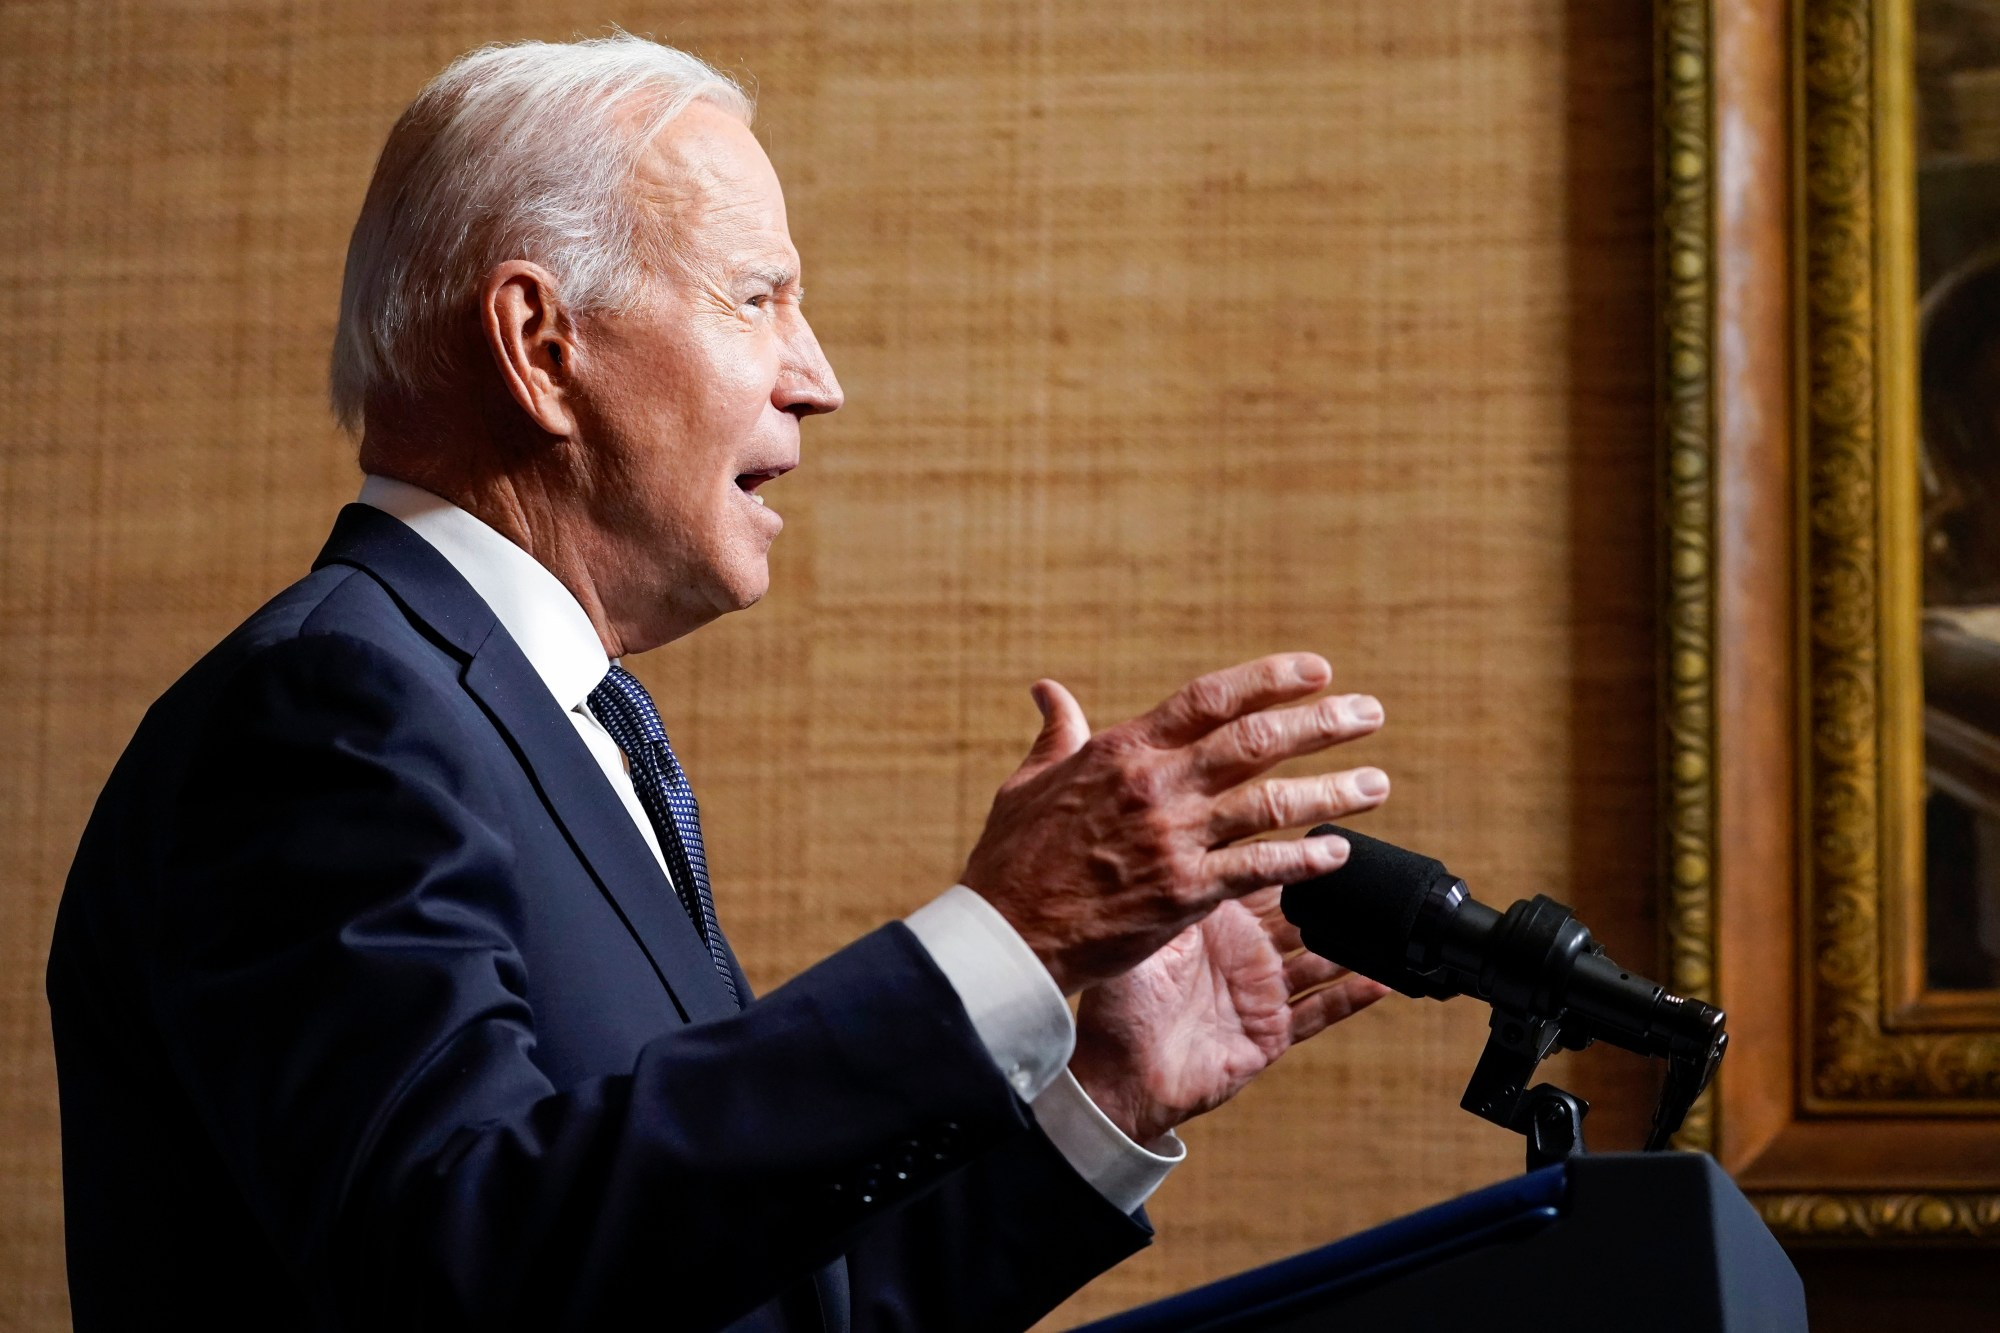 President Joe Biden speaks from the Treaty Room in the White House on Wednesday, April 14, 2021, about the withdrawal of the remainder of U.S. troops from Afghanistan. (AP Photo/Andrew Harnik, Pool)